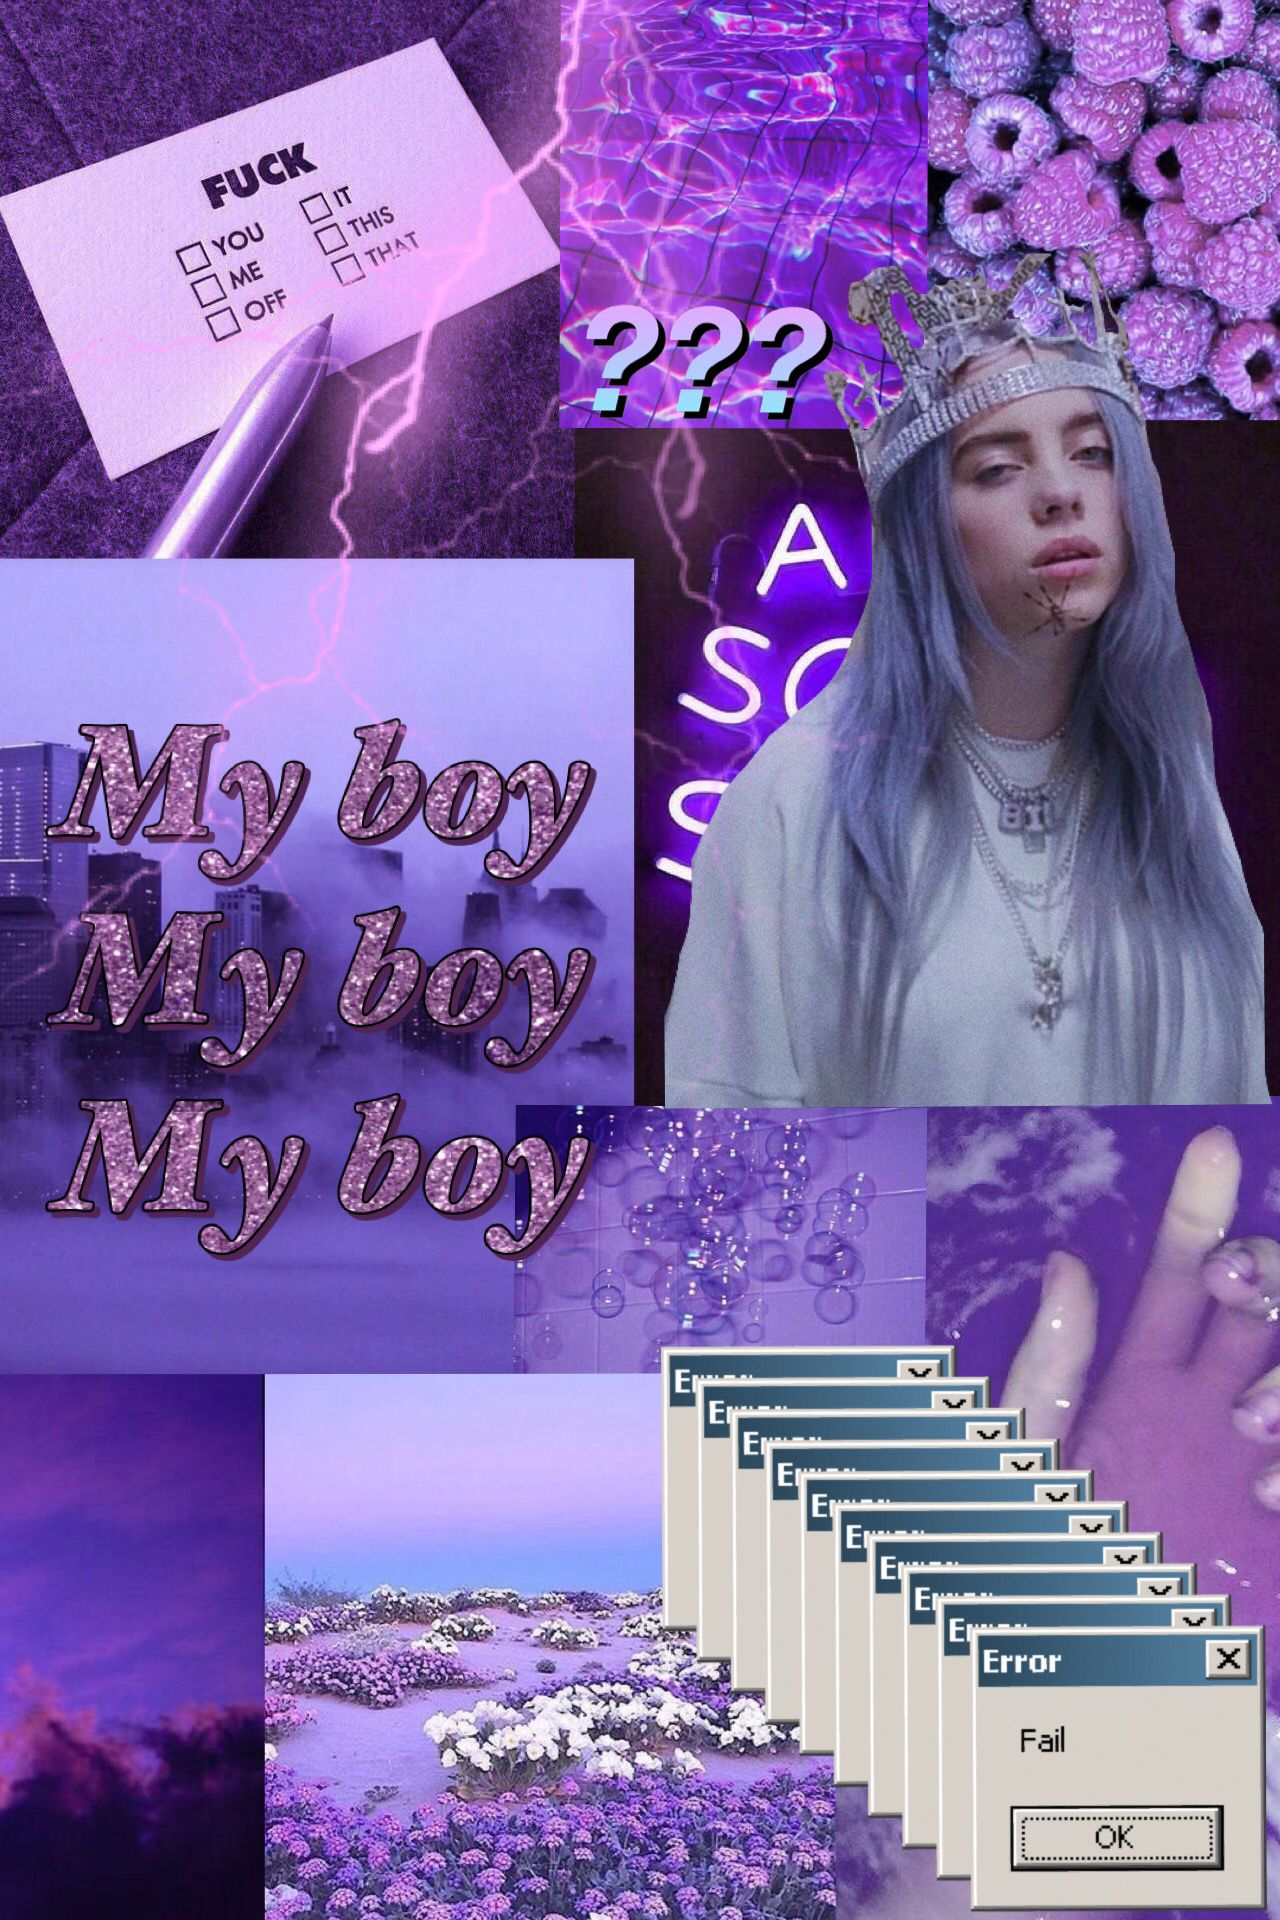 Billie Purple Aesthetic Wallpaper Aesthetic Wallpapers Purple